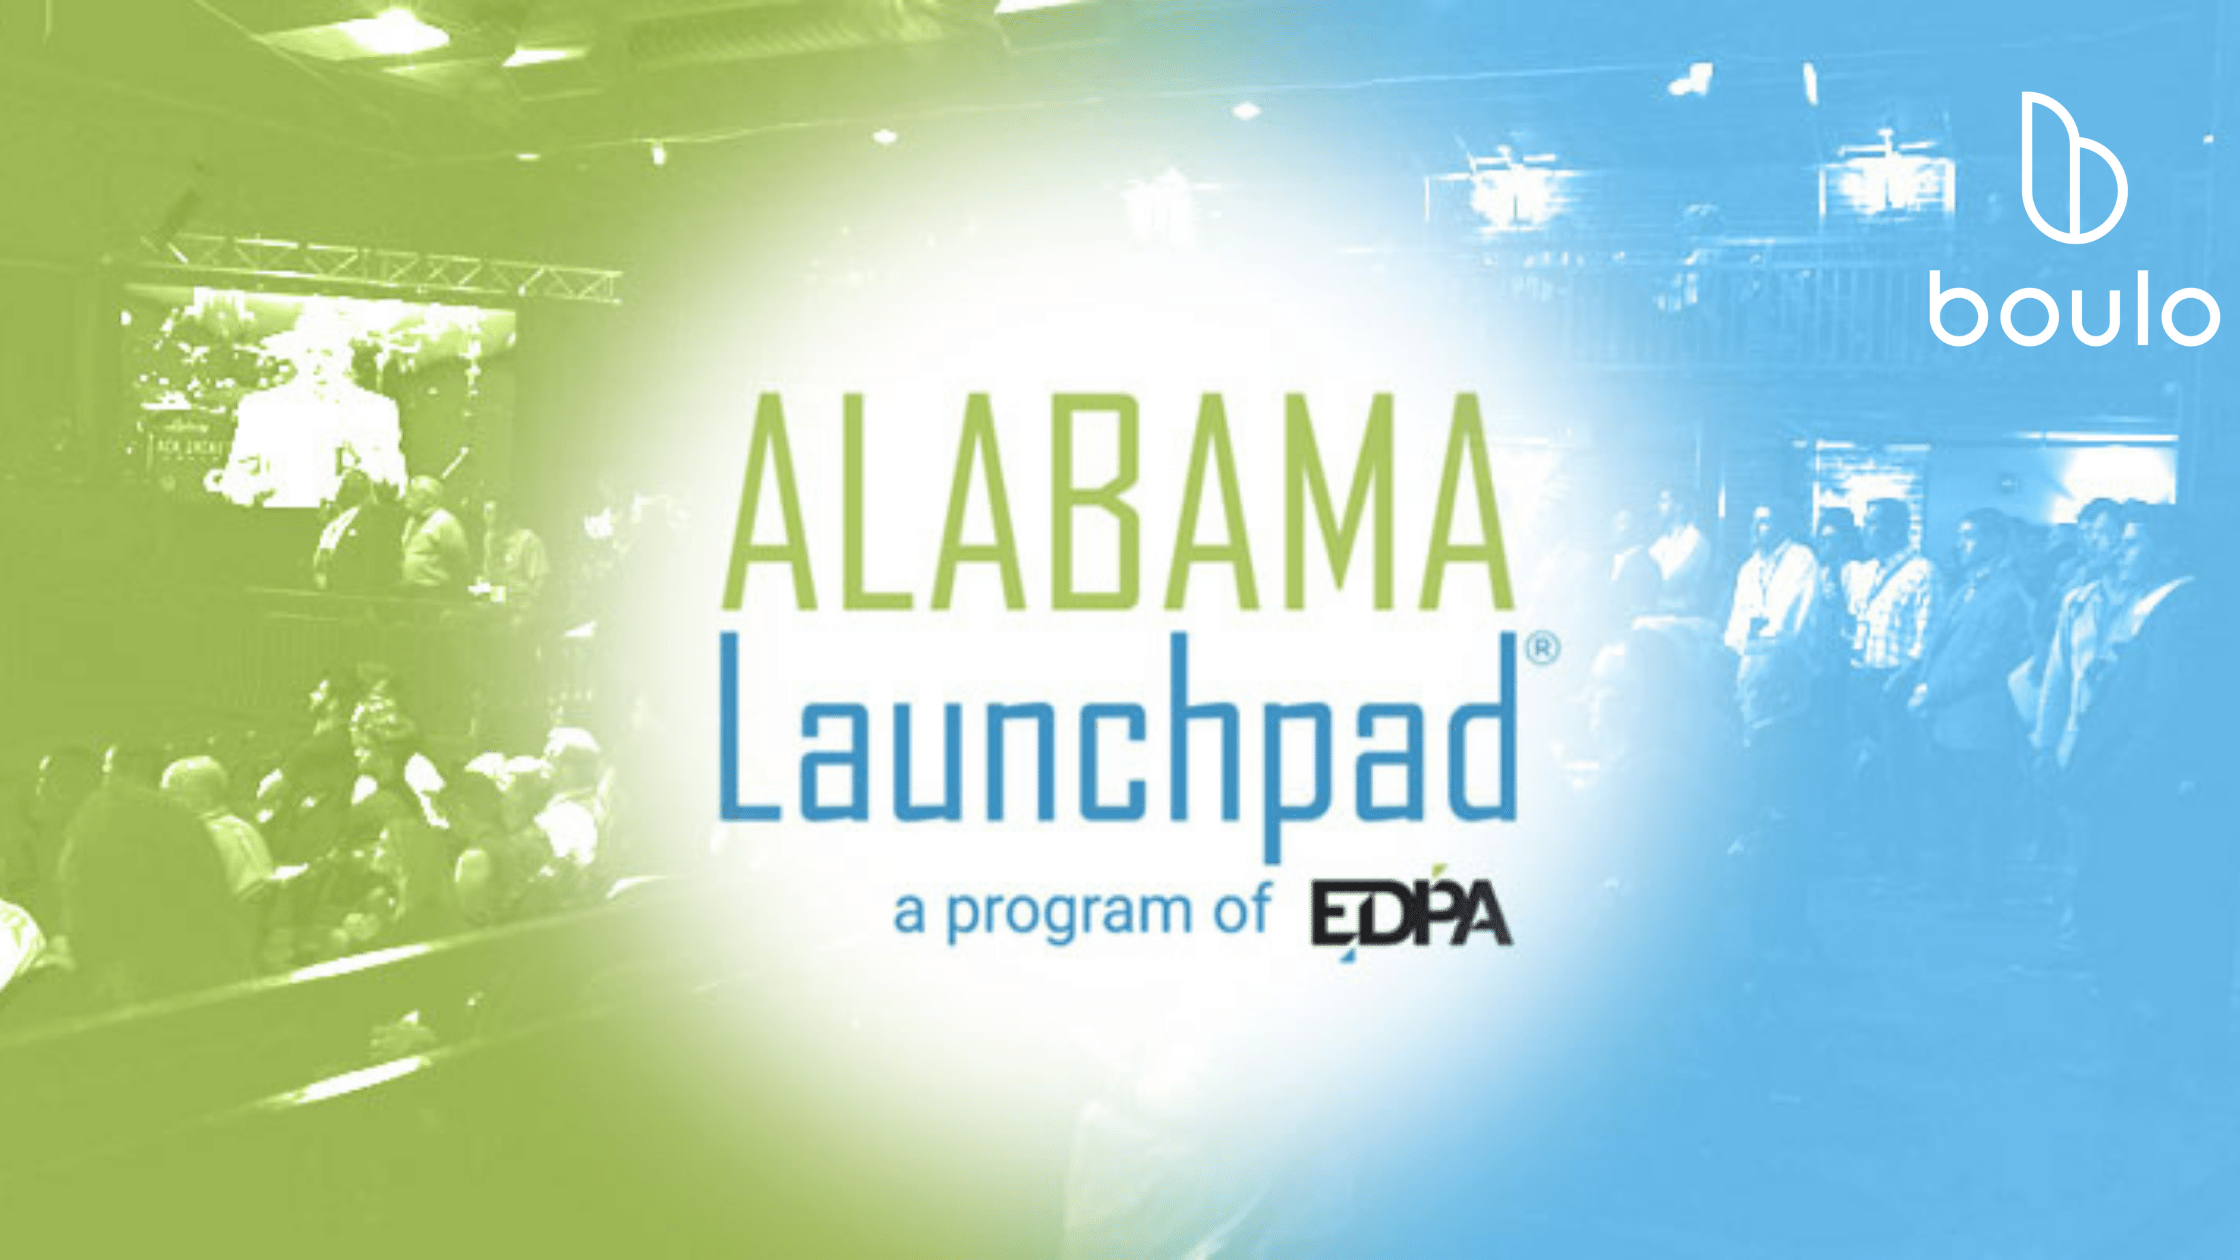 Alabama Launchpad title and presentation images with Boulo logo for article on finalists